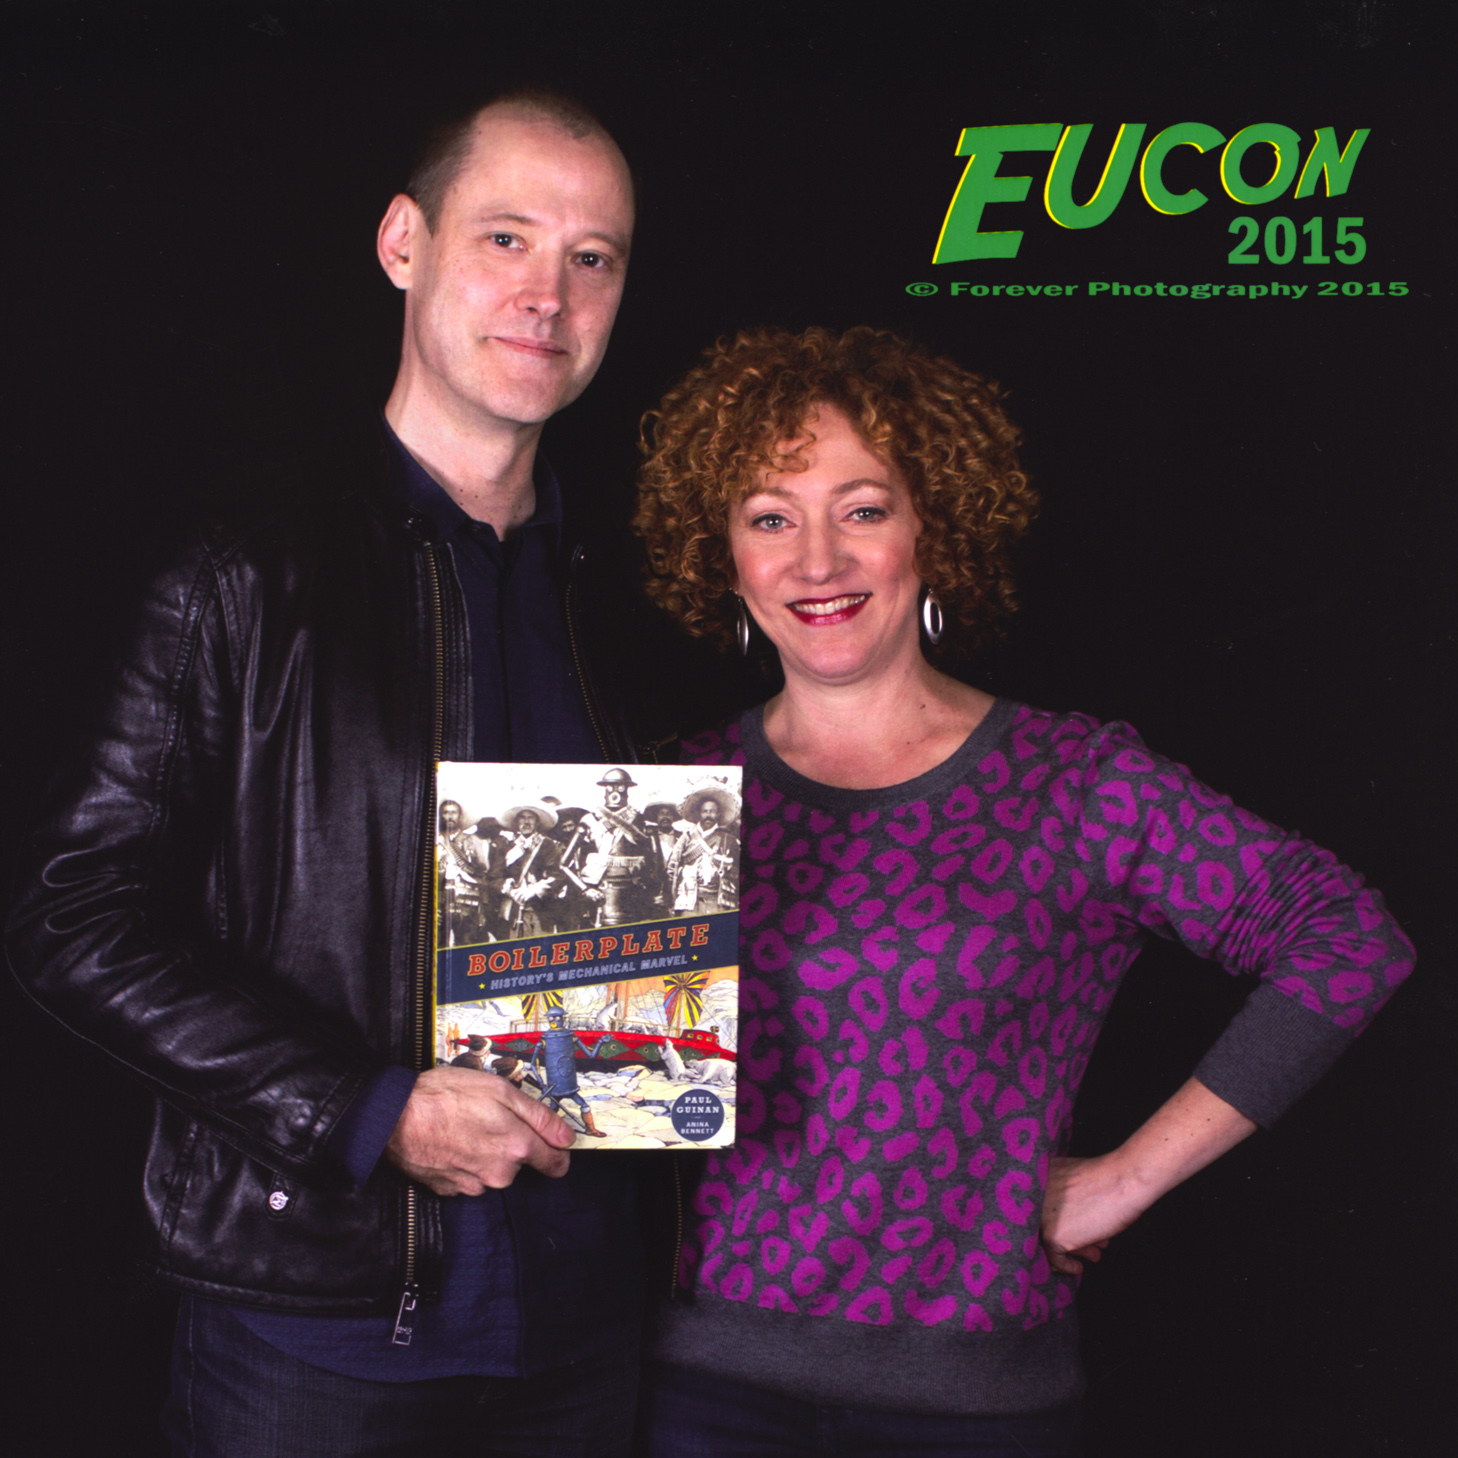 EUCON (Eugene Comicon) 2015